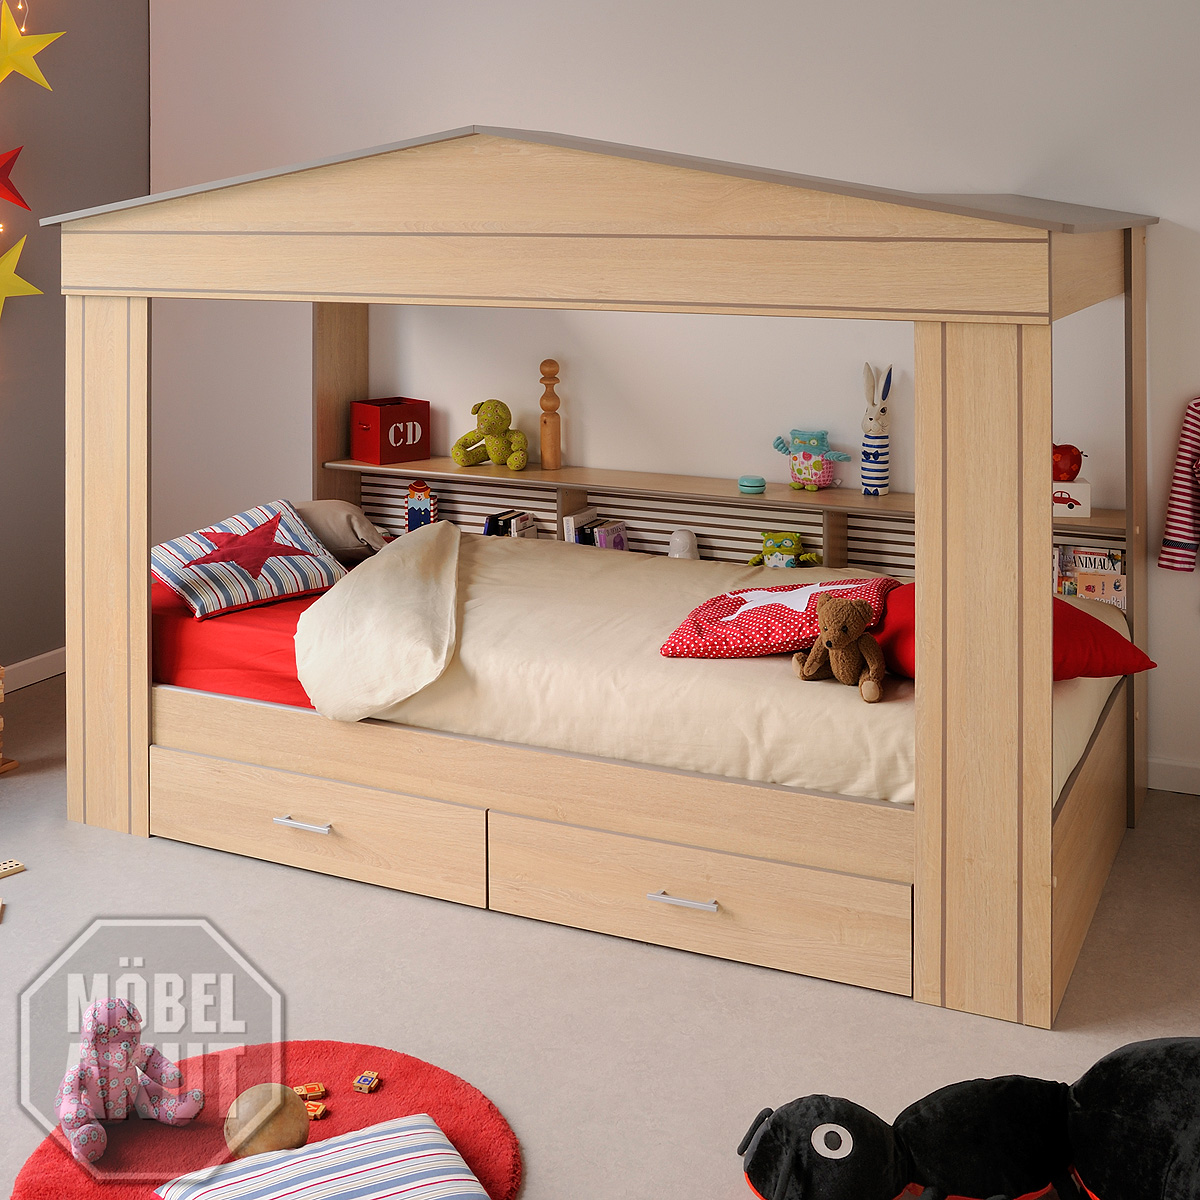 kinderbett landhaus 90x200 das beste aus wohndesign und m bel inspiration. Black Bedroom Furniture Sets. Home Design Ideas